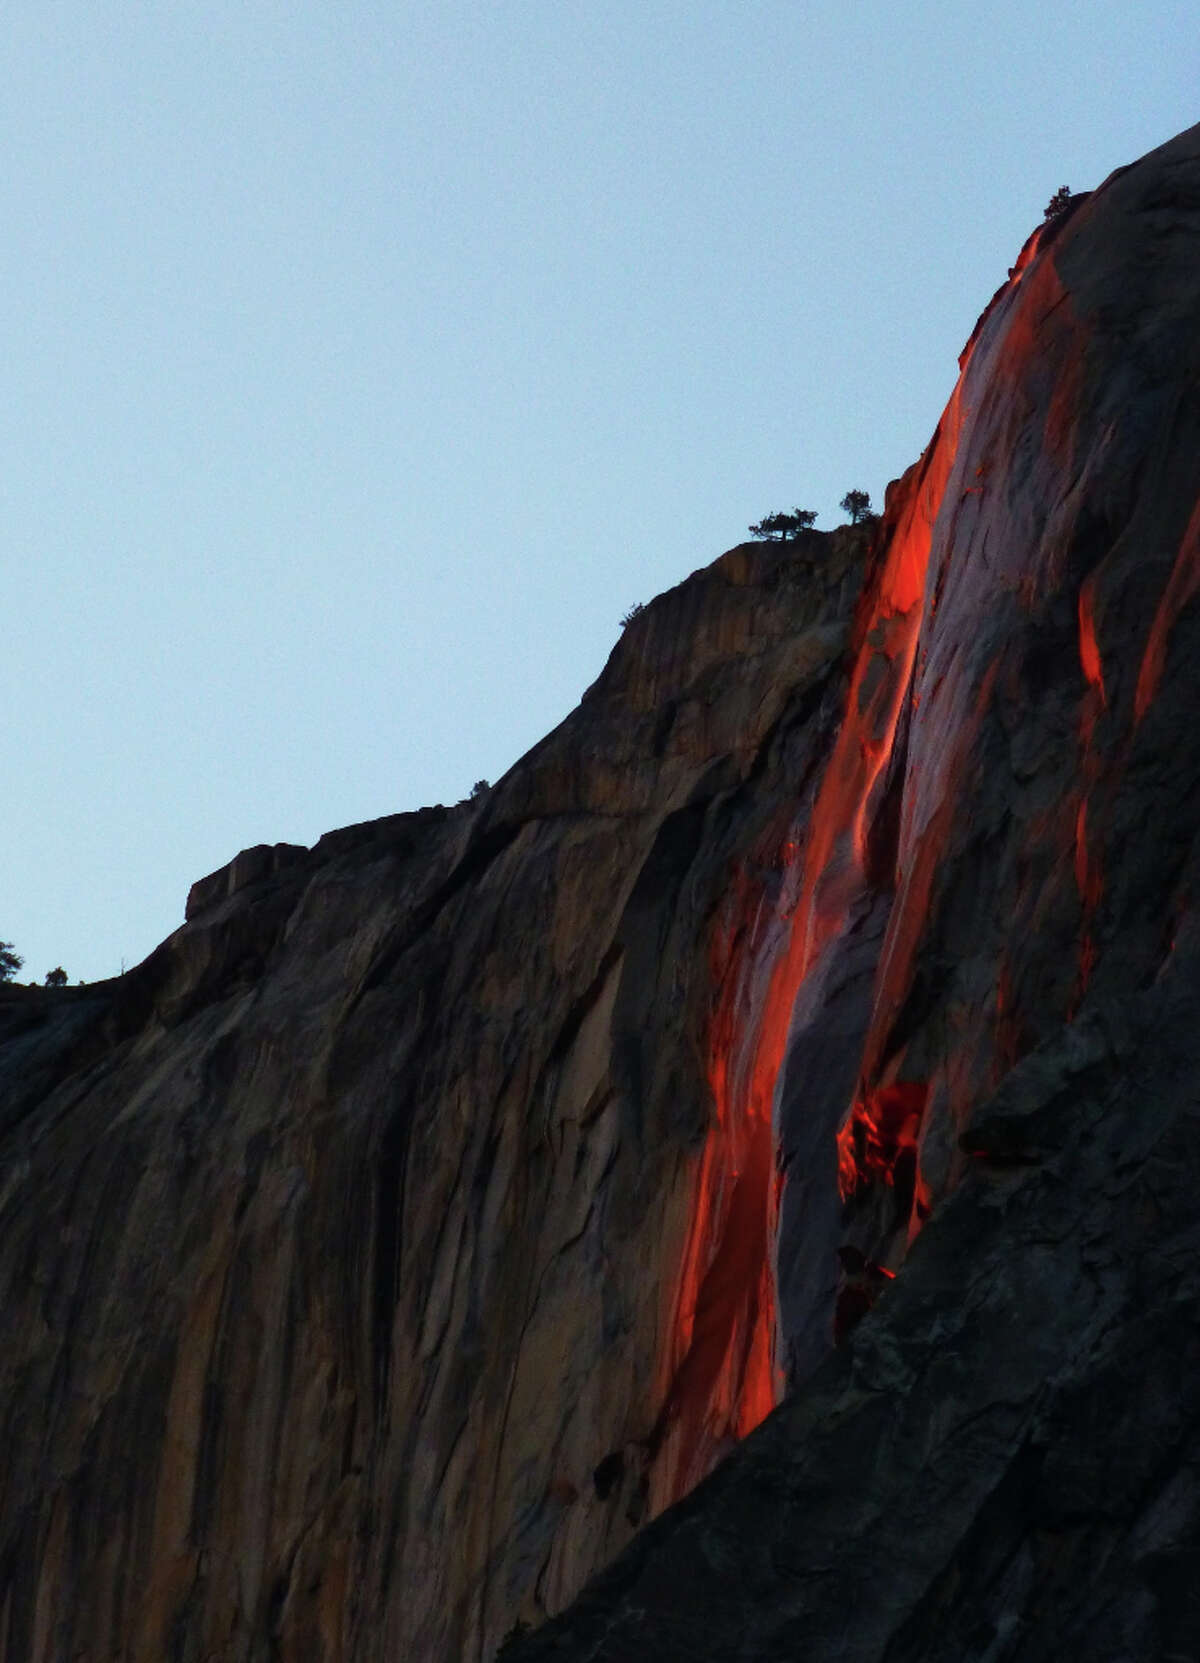 Conditions synchronized at dusk in 2013 to turn Horsetail Fall in Yosemite Valley into a firefall. This image is untouched, non Photoshopped or enhanced in any way.